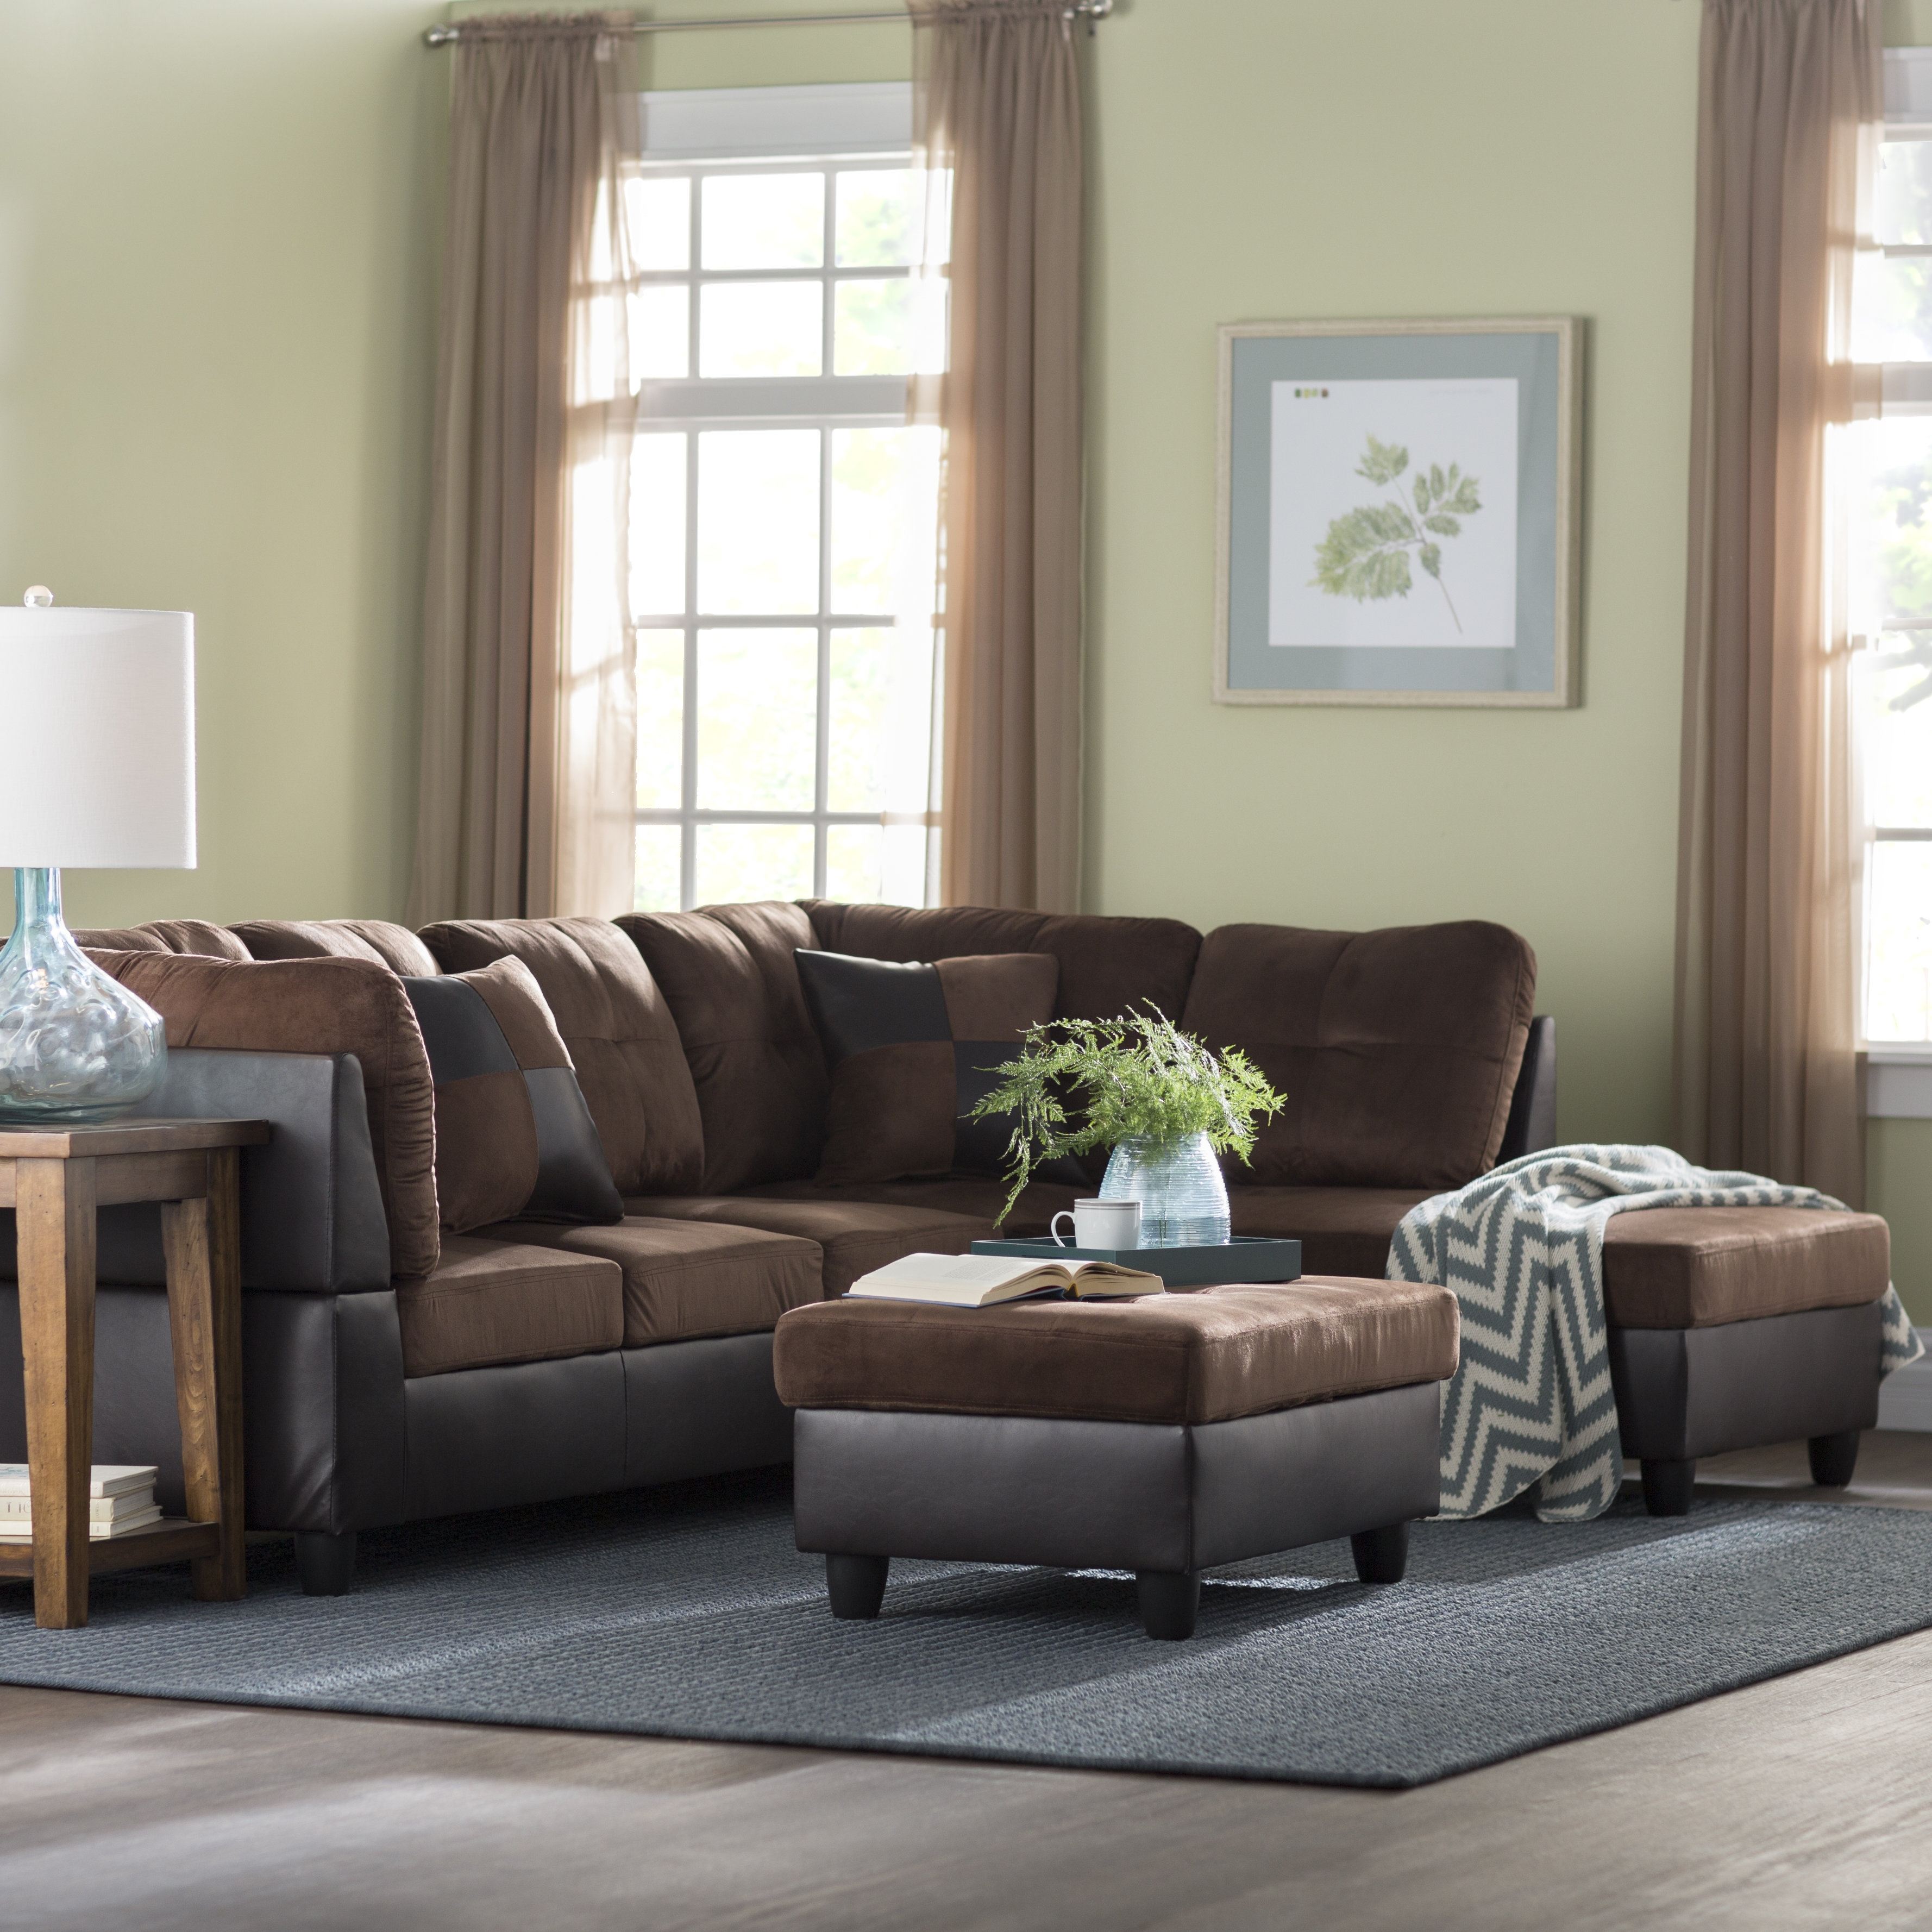 Andover Mills Russ Sectional With Ottoman & Reviews | Wayfair Intended For Blaine 4 Piece Sectionals (Image 1 of 25)